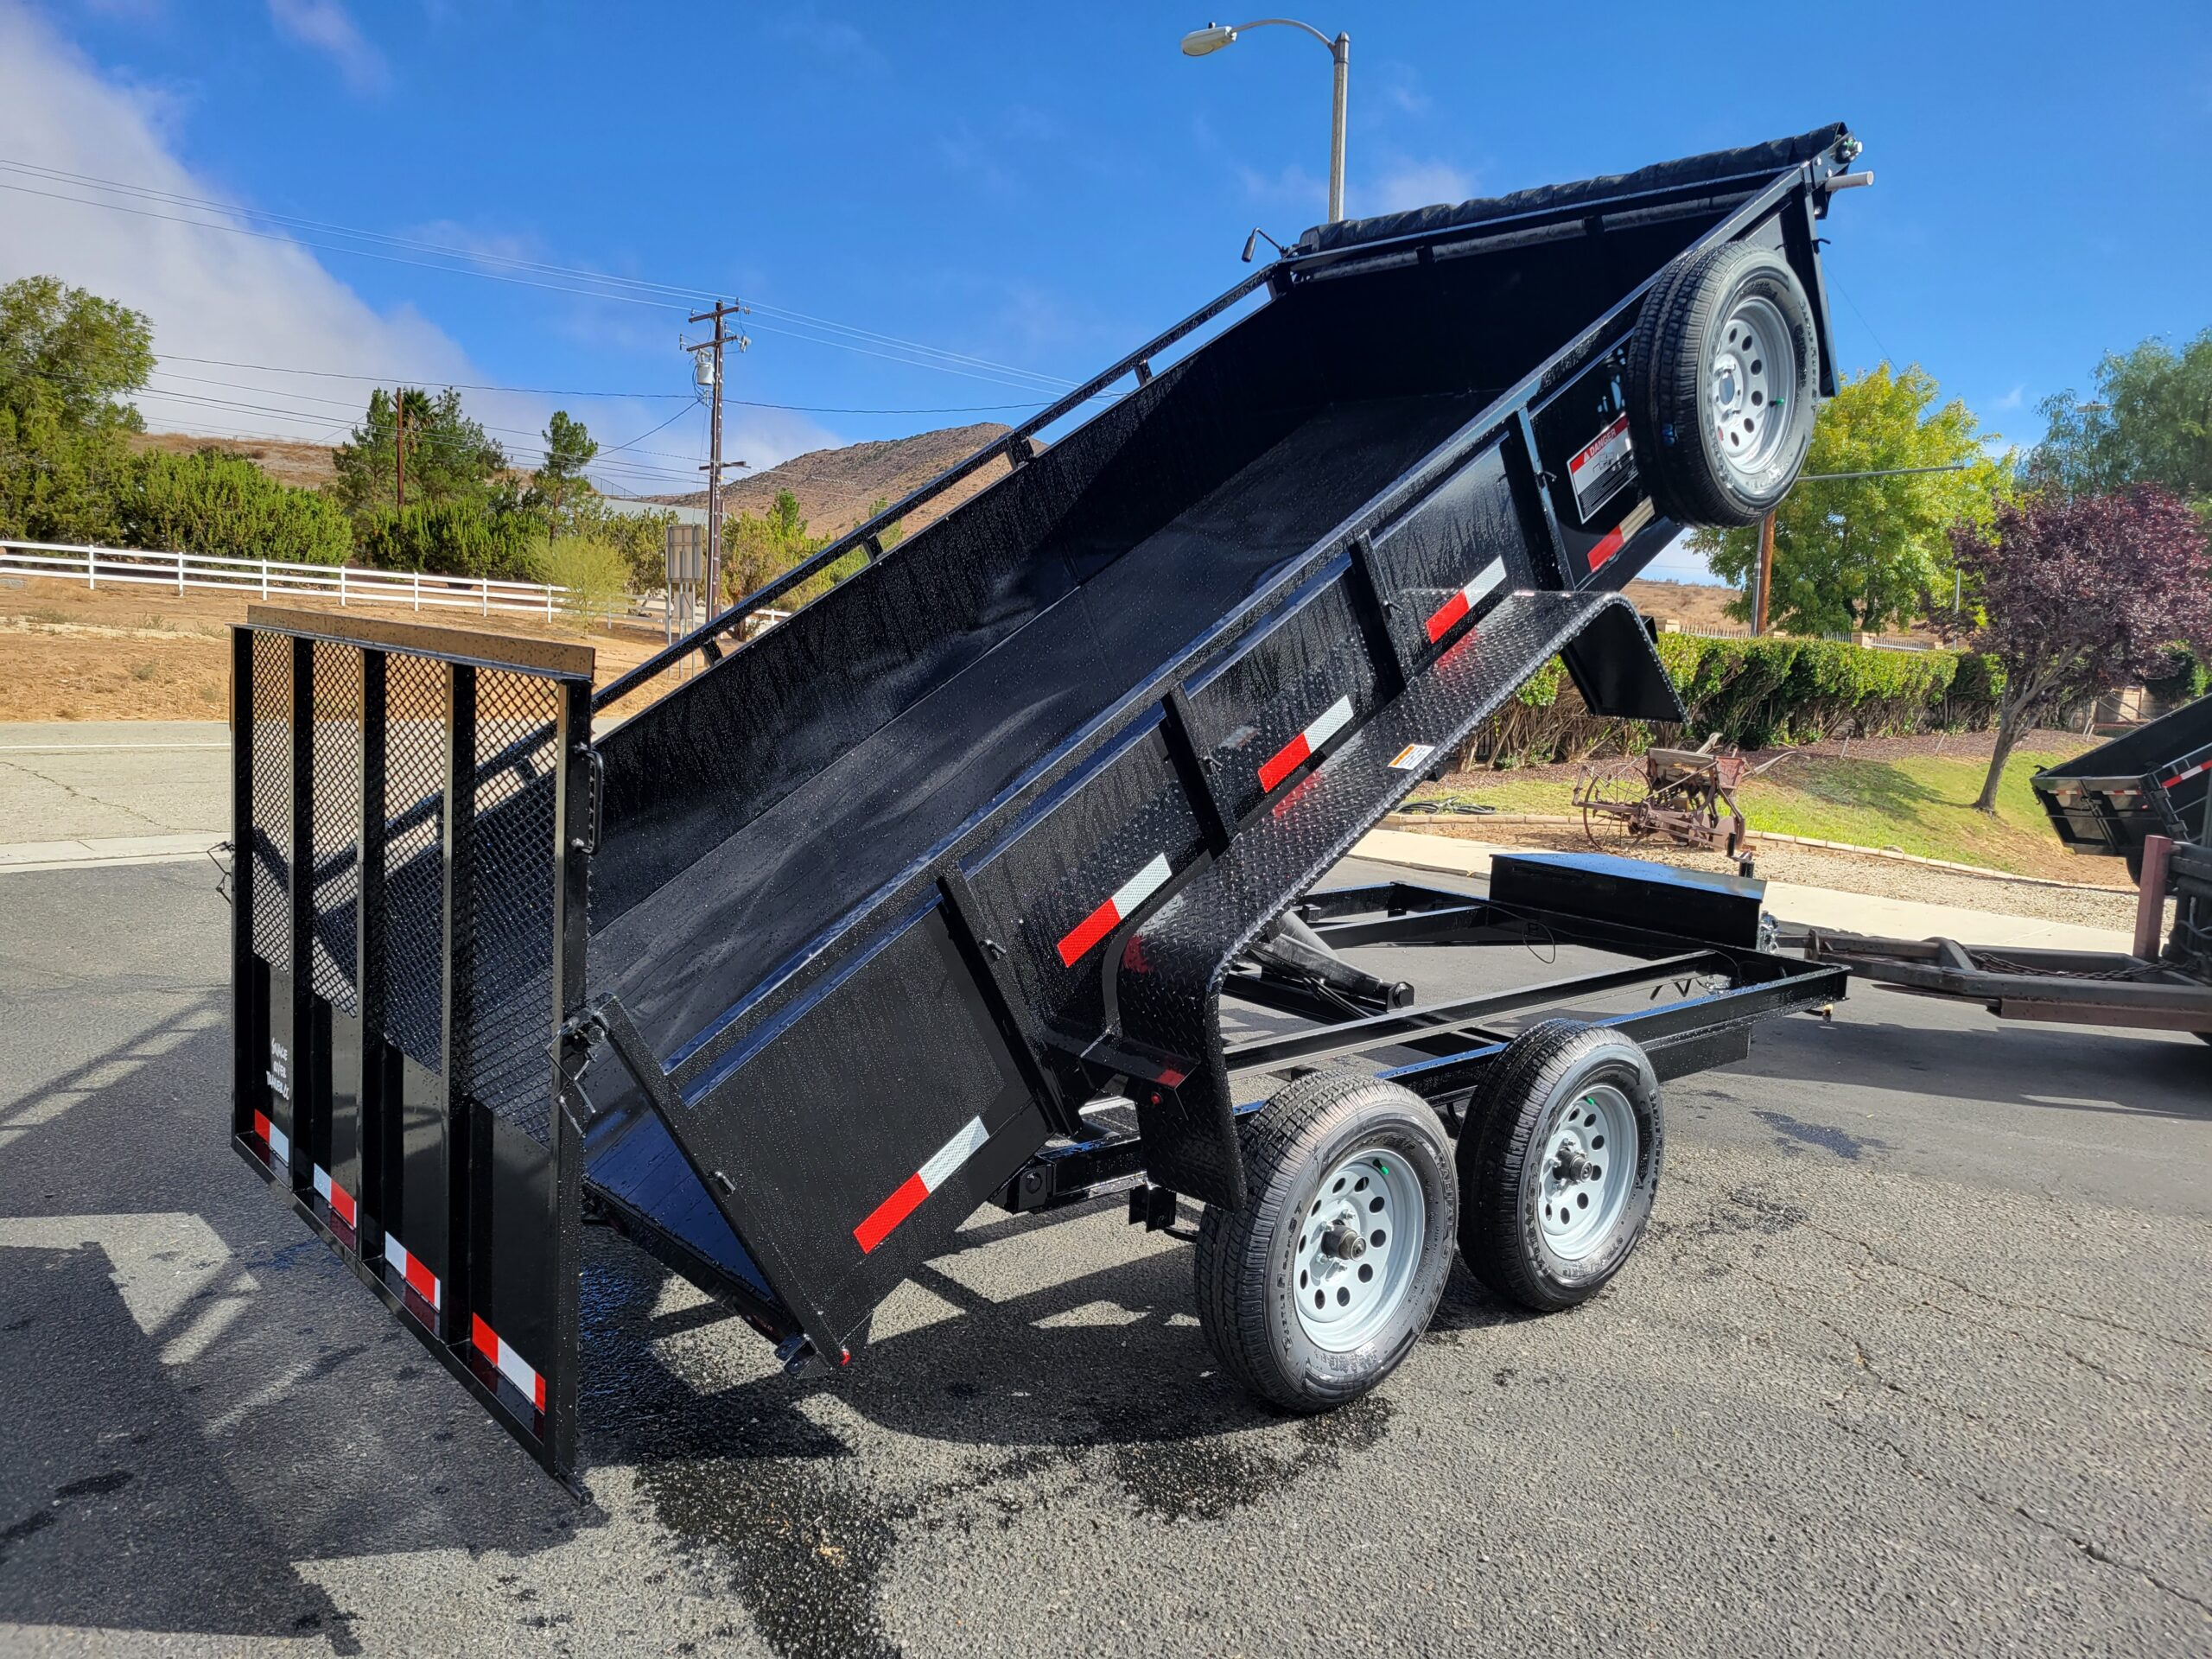 Snake River 6x12.6 Dutility Dump - Passenger side rear 3/4 view bed up w/spreader gate activated